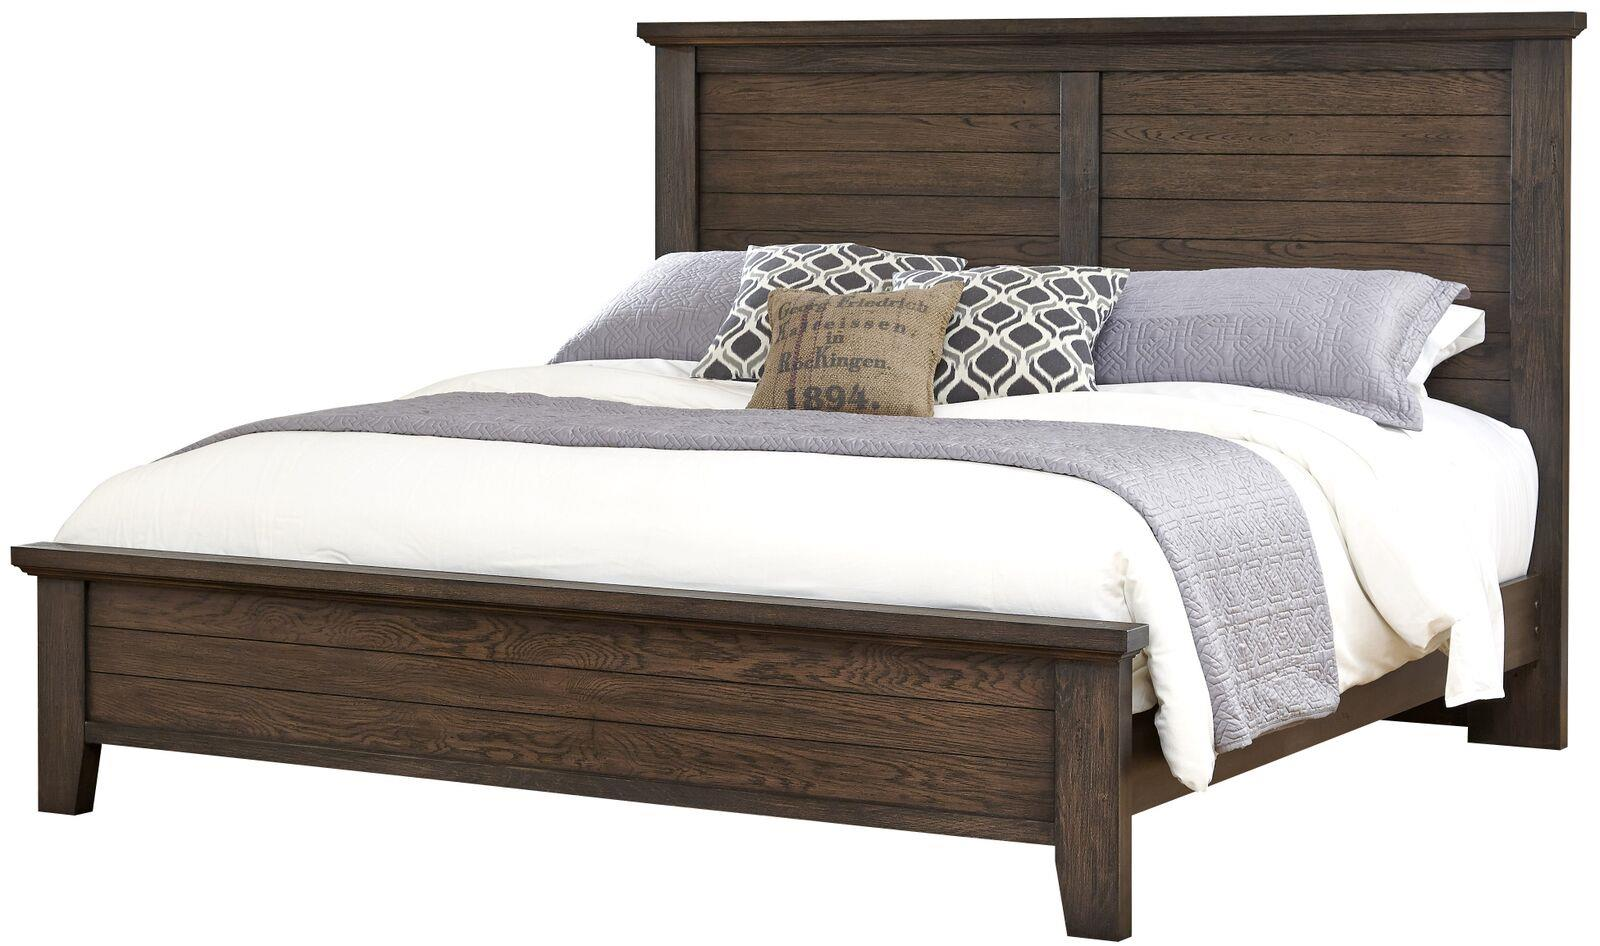 Vaughan Bassett Gramercy Park King Plank Bed - Item Number: 518-668+866+922+MS1